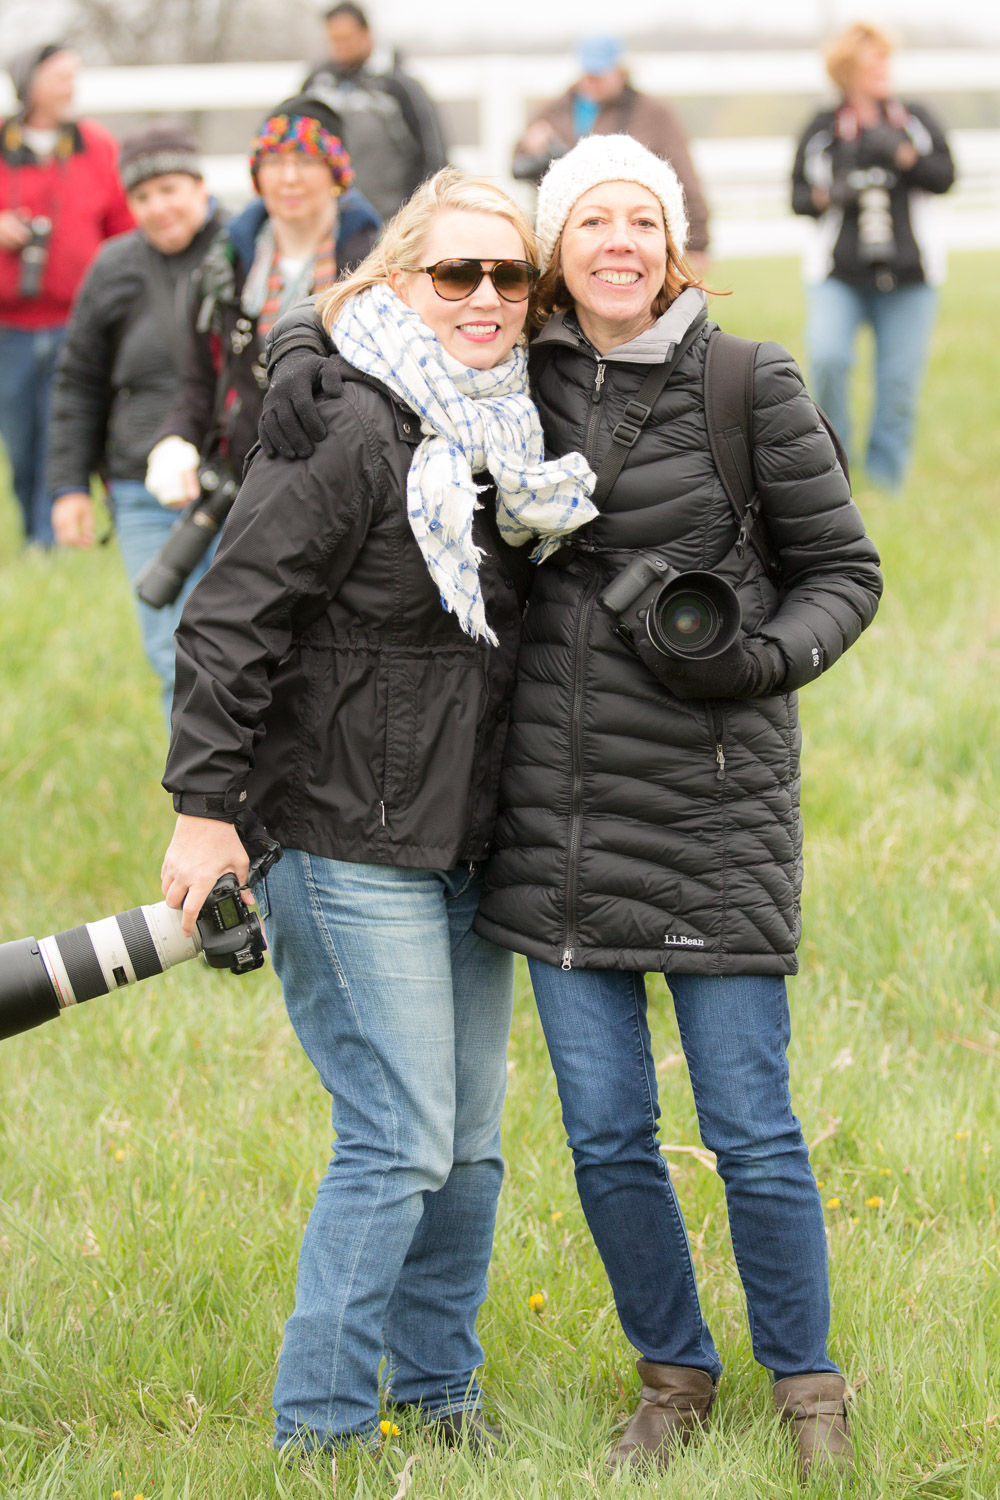 Anne Belmont and me after my April 2016 event Horsing Around Chicago: Photographing the Tempel Lipizzans. Photo Credit: Chris Smith/Out of Chicago Photography.